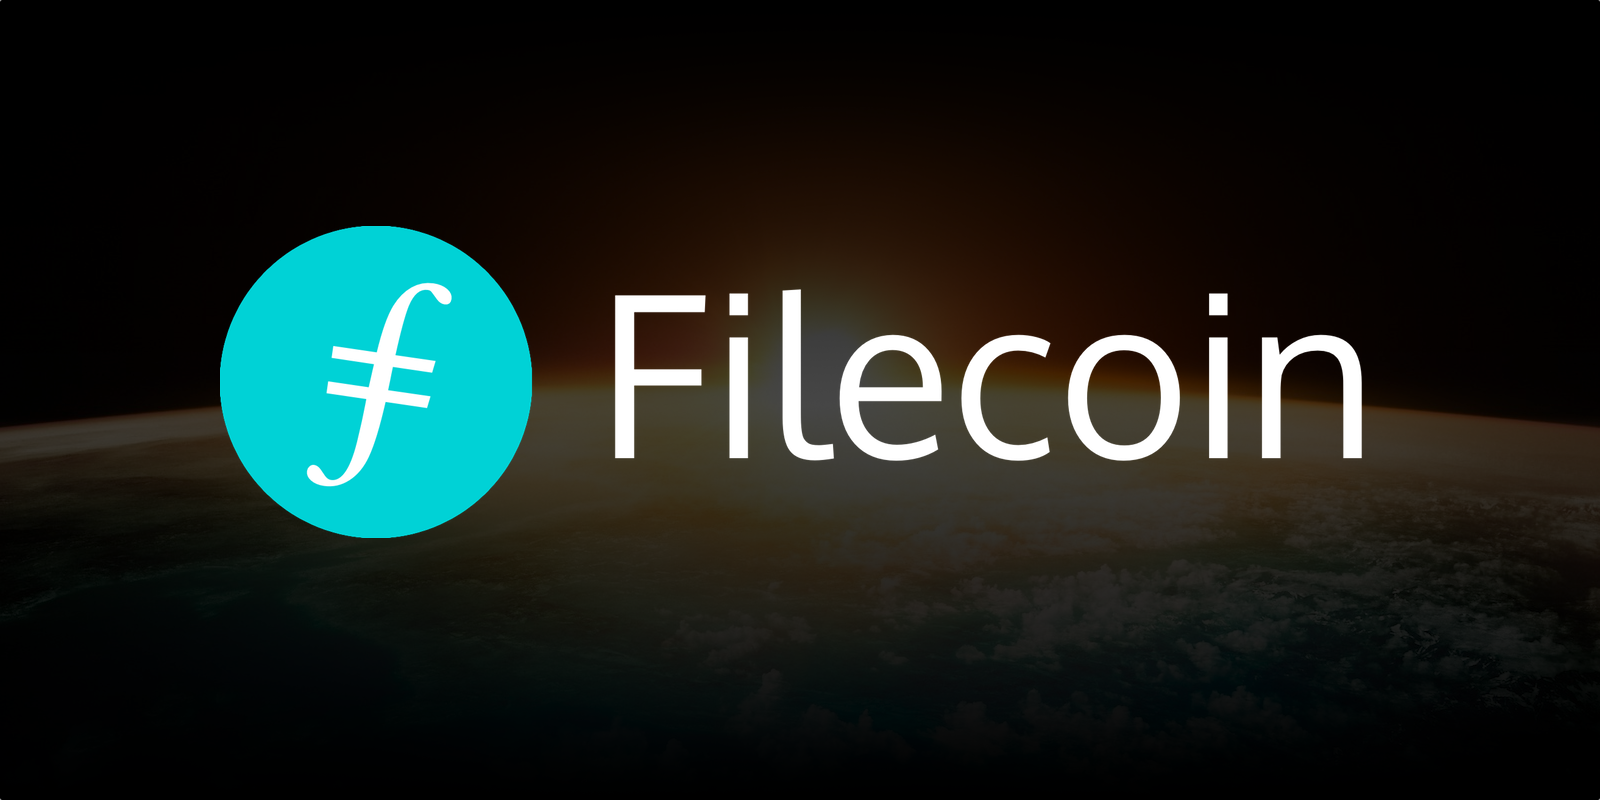 filecoin ico, filecoin, invest in filecoin